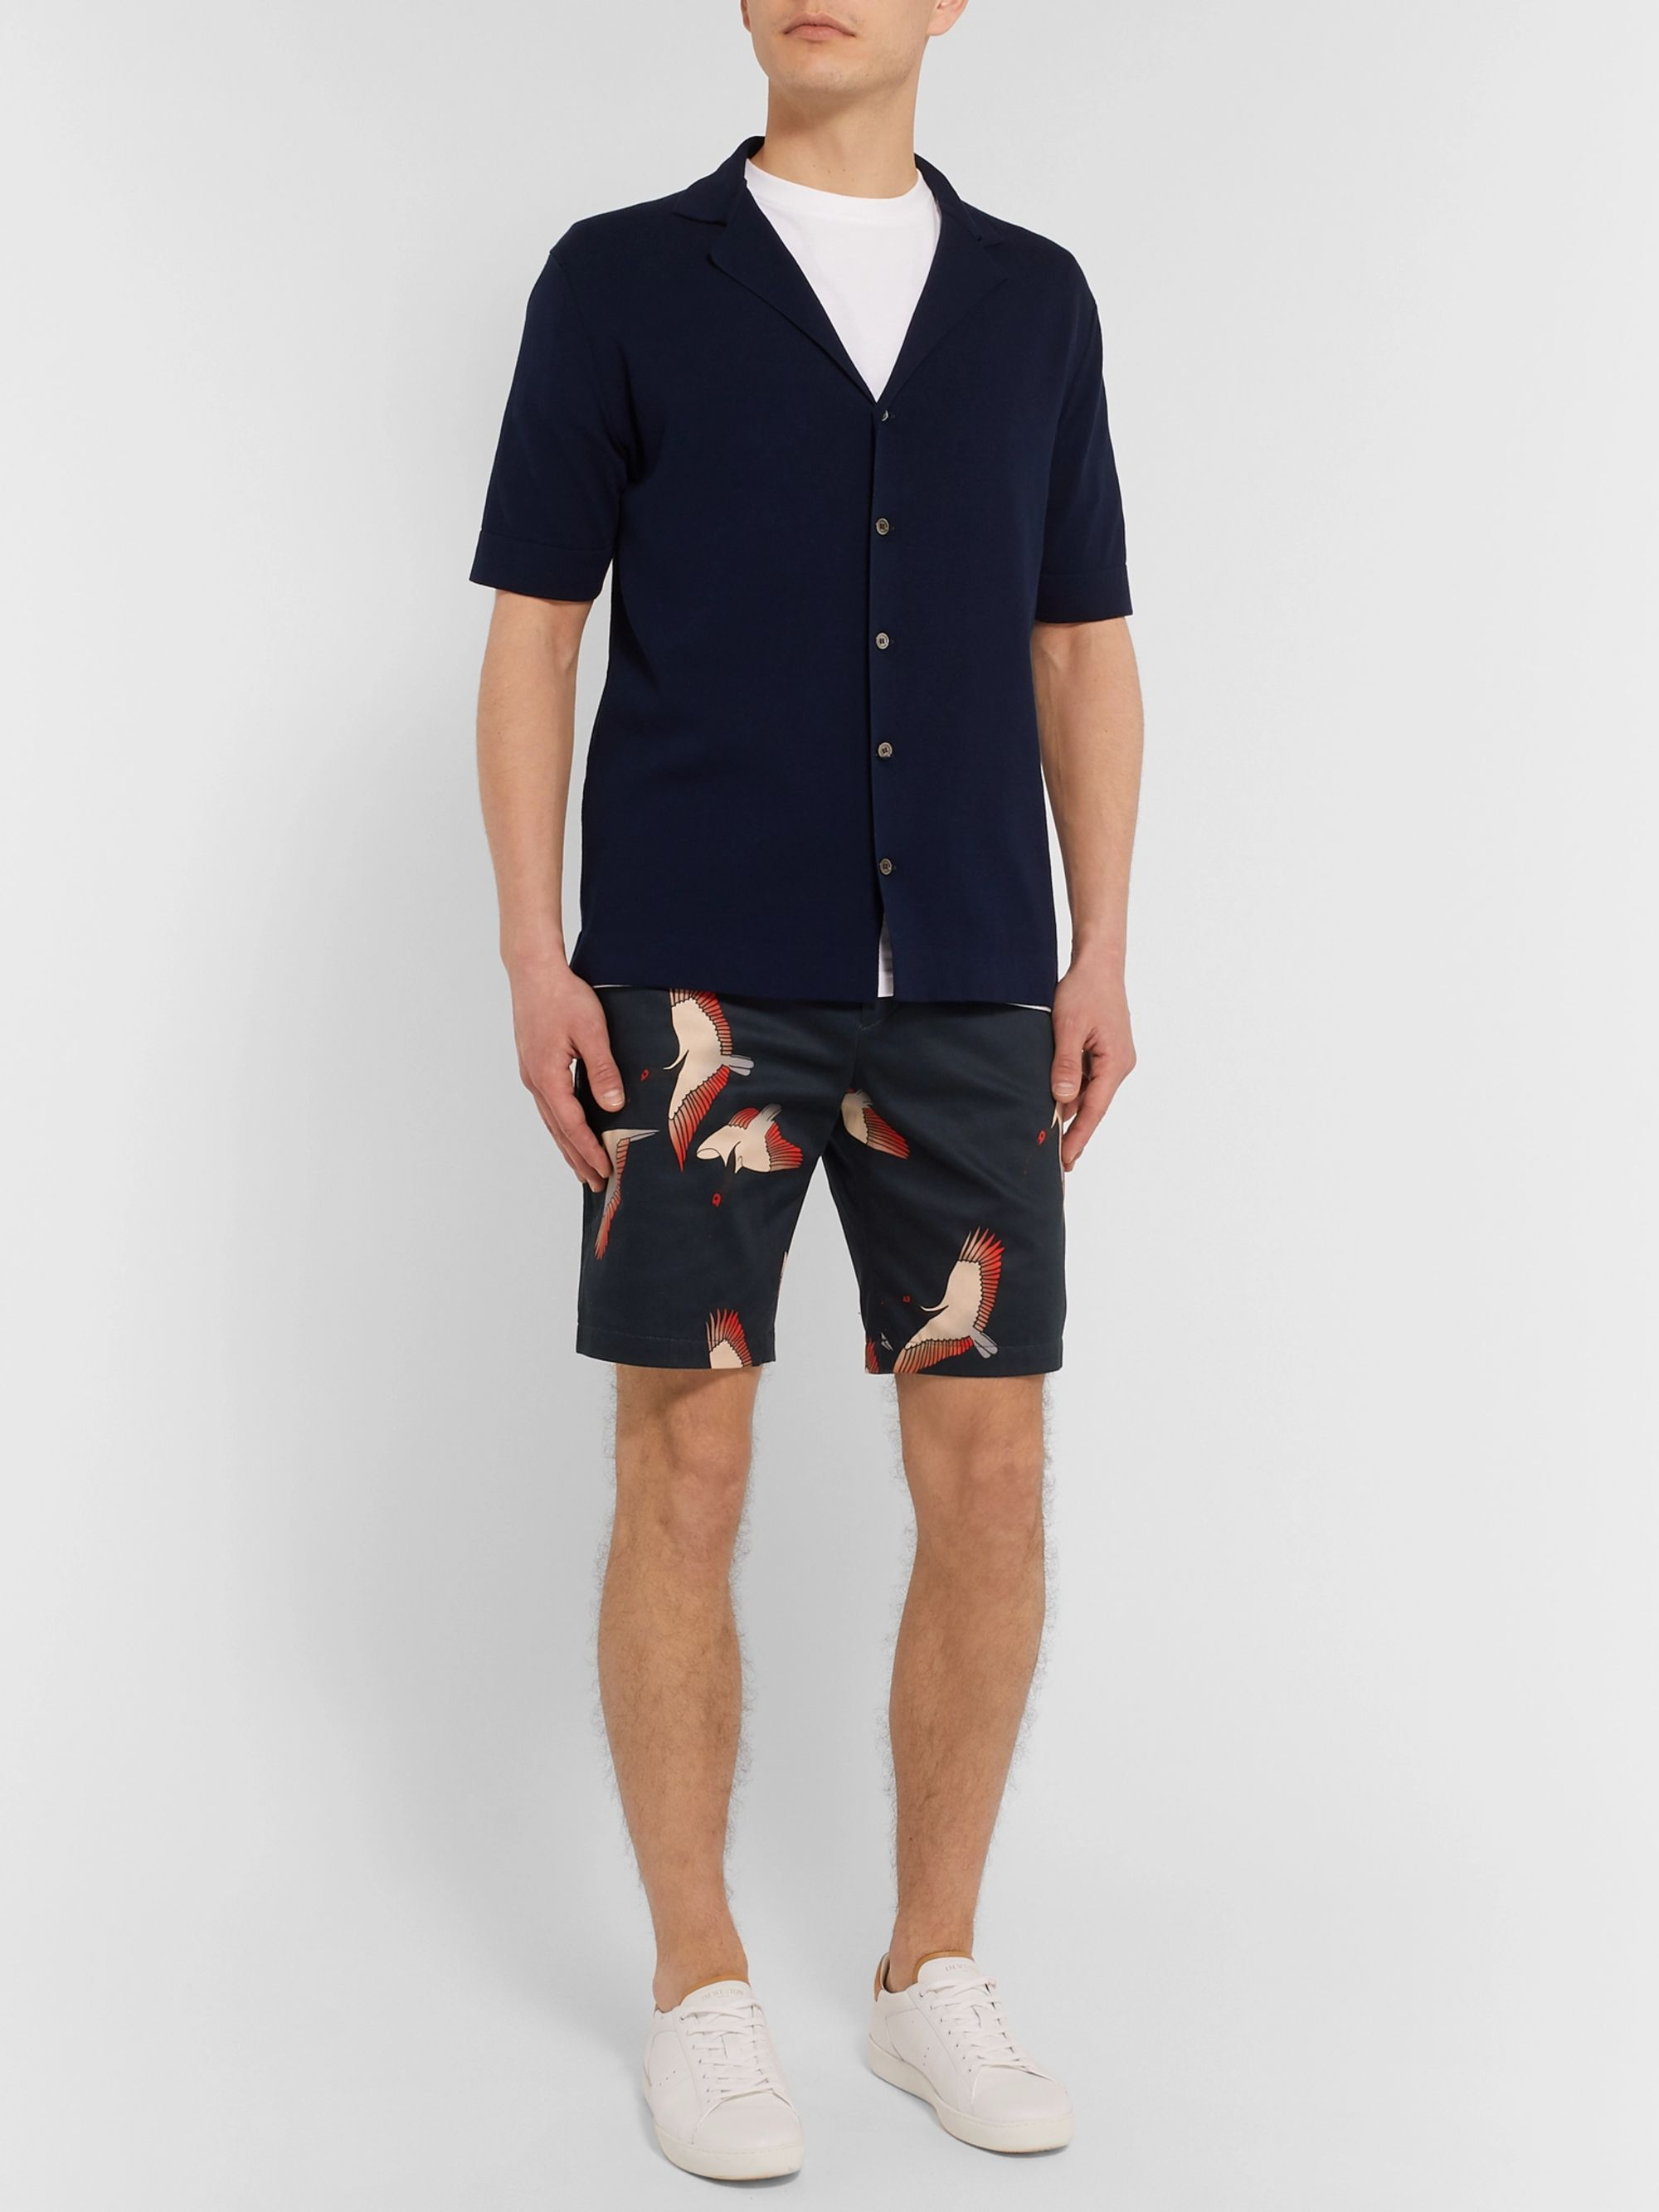 Paul Smith Slim-Fit Printed Cotton-Blend Shorts